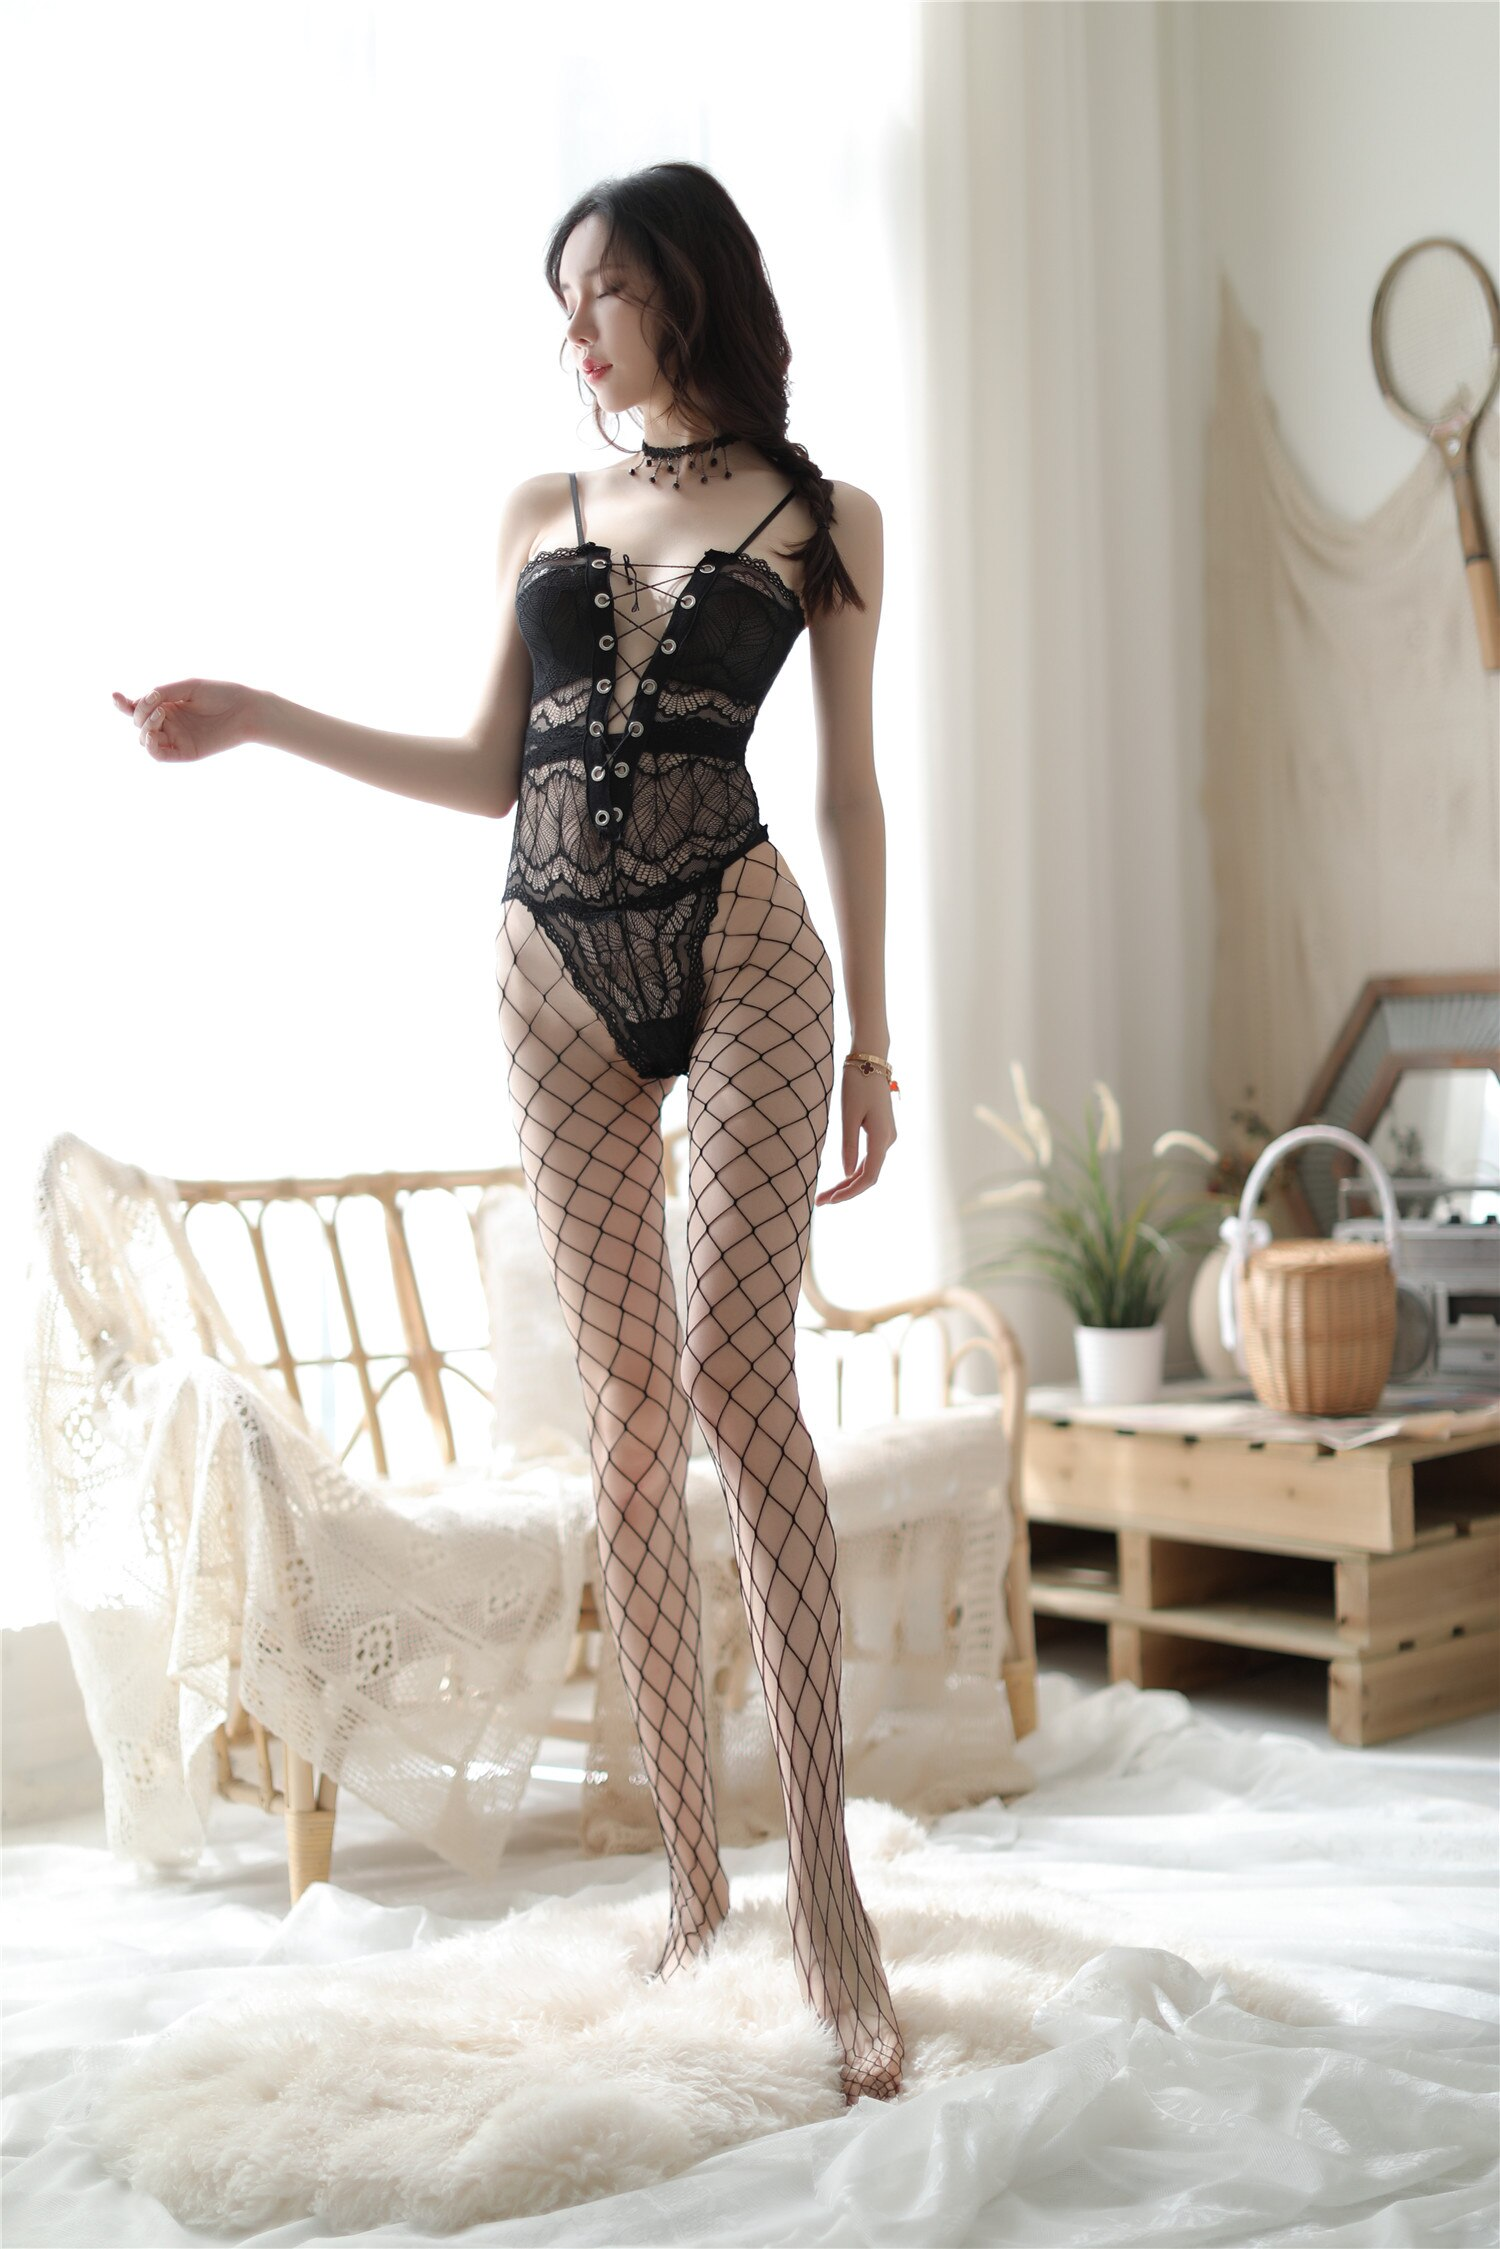 Black sexy sexy one-piece stockings tight-fitting breastless and crotchless transparent one-piece fi